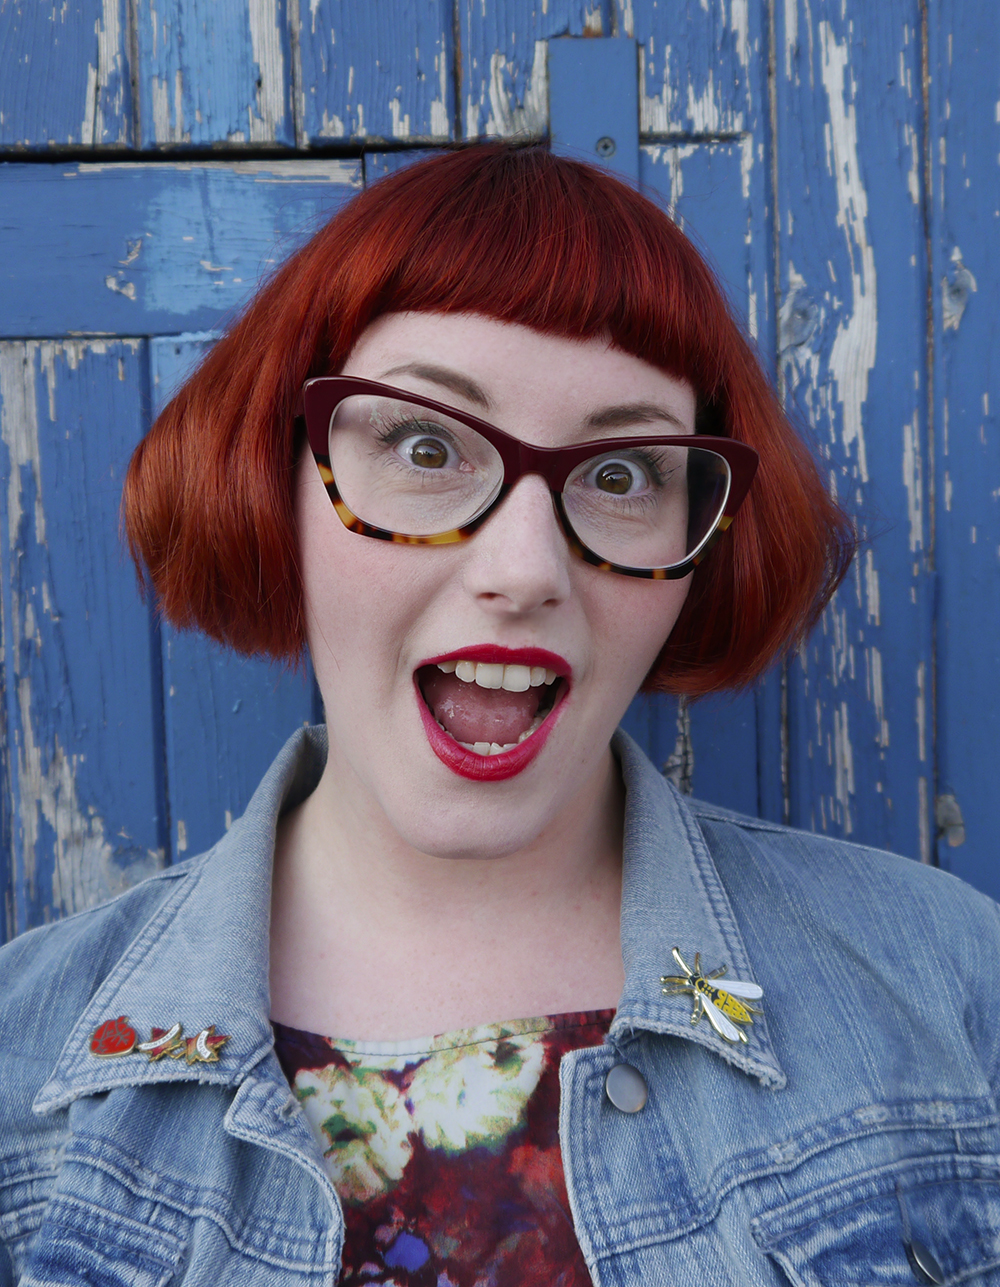 Scottish blogger, Dundee blogger, red haired blogger, red bob, ginger bob, cate eye glasses, William Morris Black Label, Spex Pistols, Spex Pistols Dundee, glasses shop, independent glasses shop, glasses shop Dundee, shop local, shop small, burgunday glasses, tortoiseshell glasses, glasses week, spectacles, stylish specs, specky four eyes